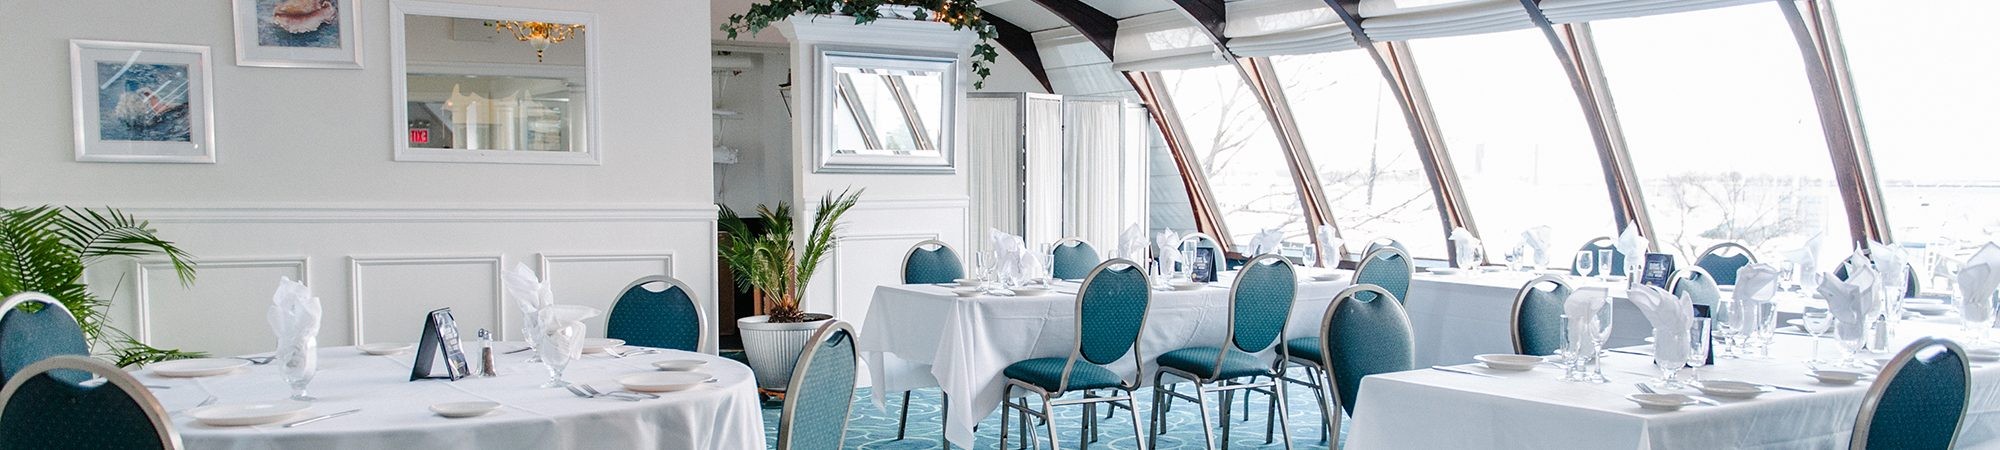 A white and blue themed dining room